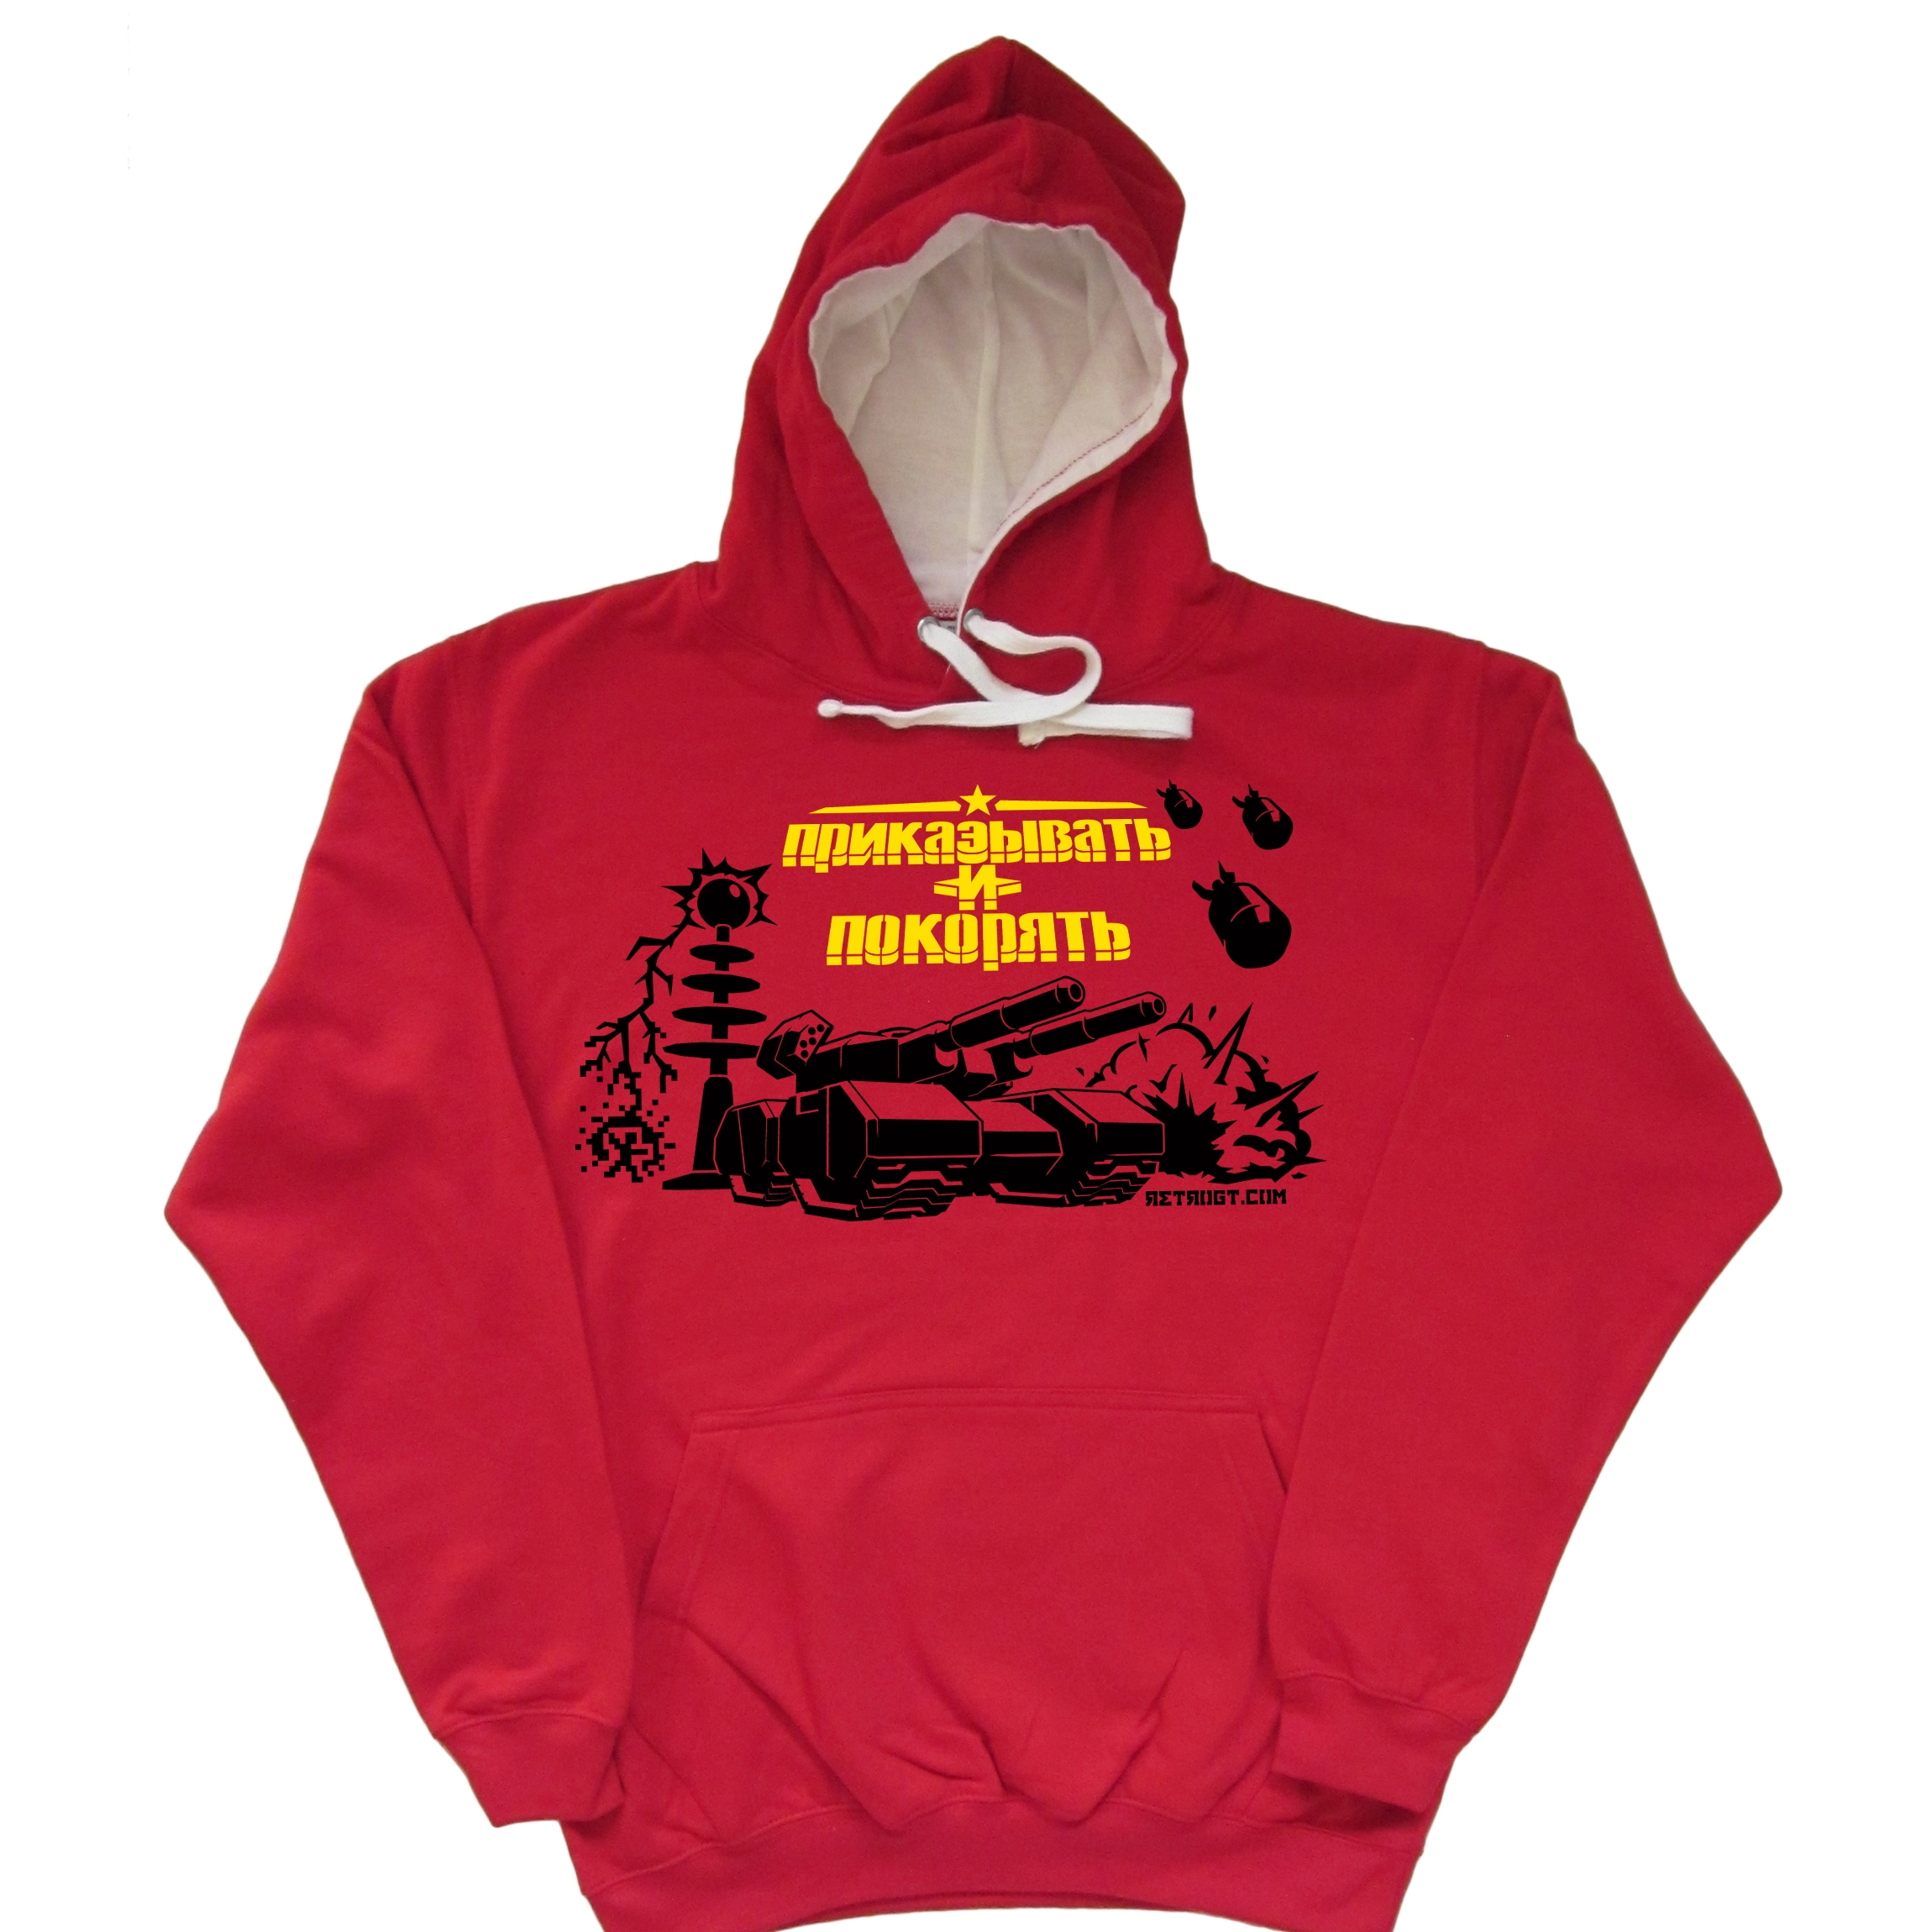 Alternative photo: Soviet Command Hoodie